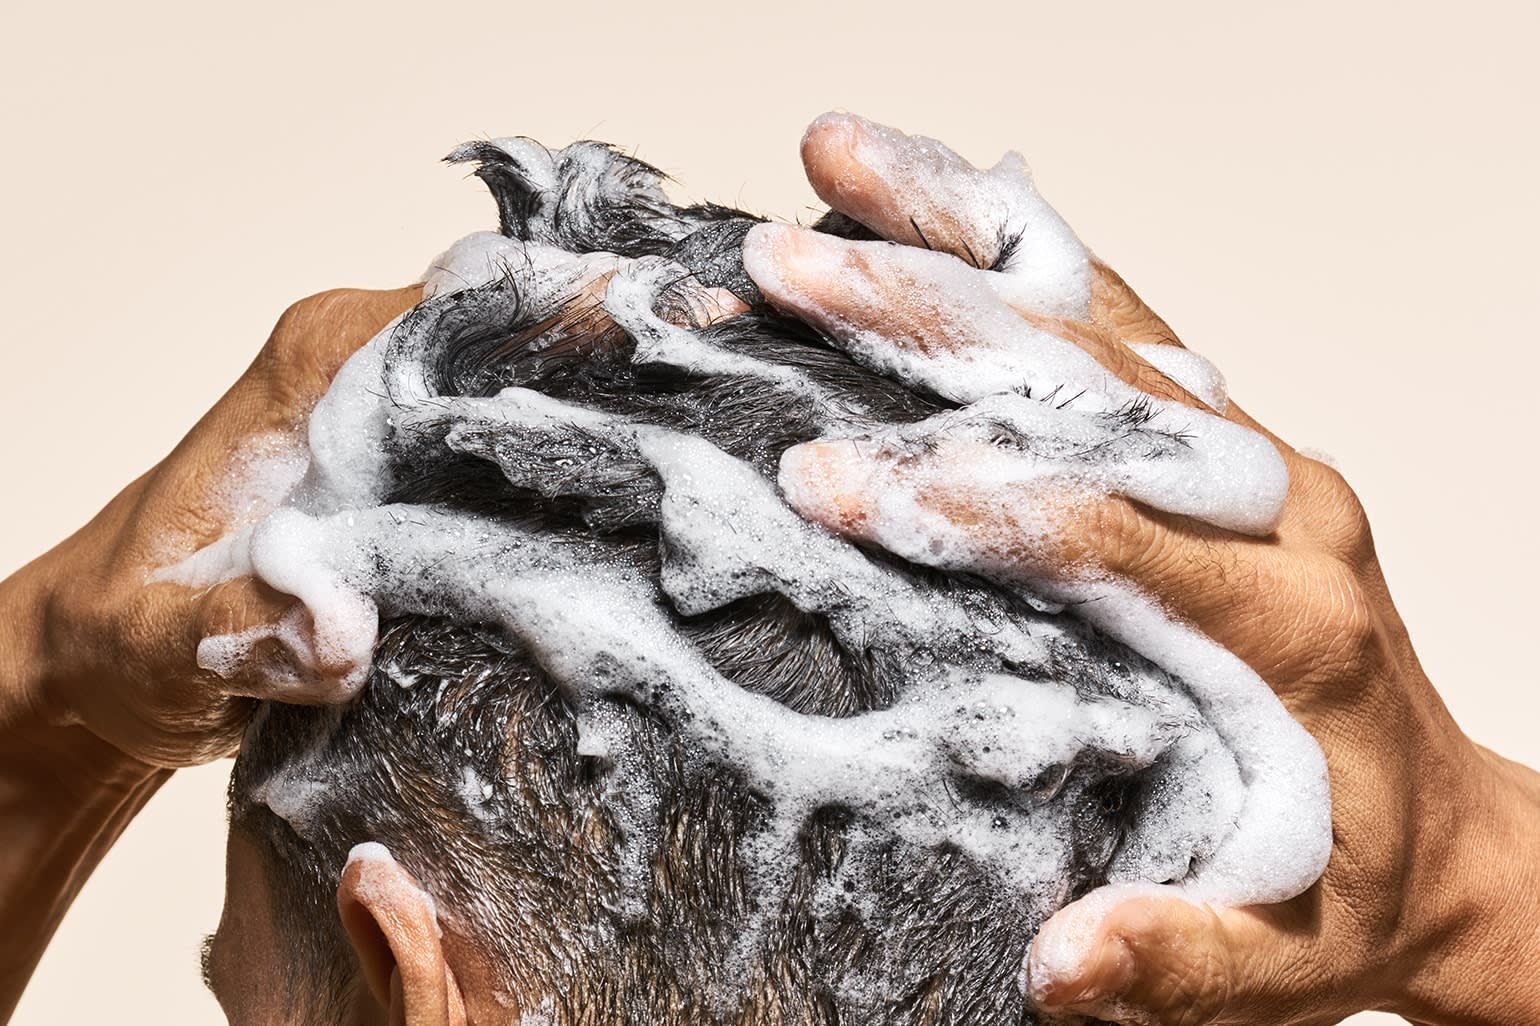 Hands lather shampoo into a man's hair